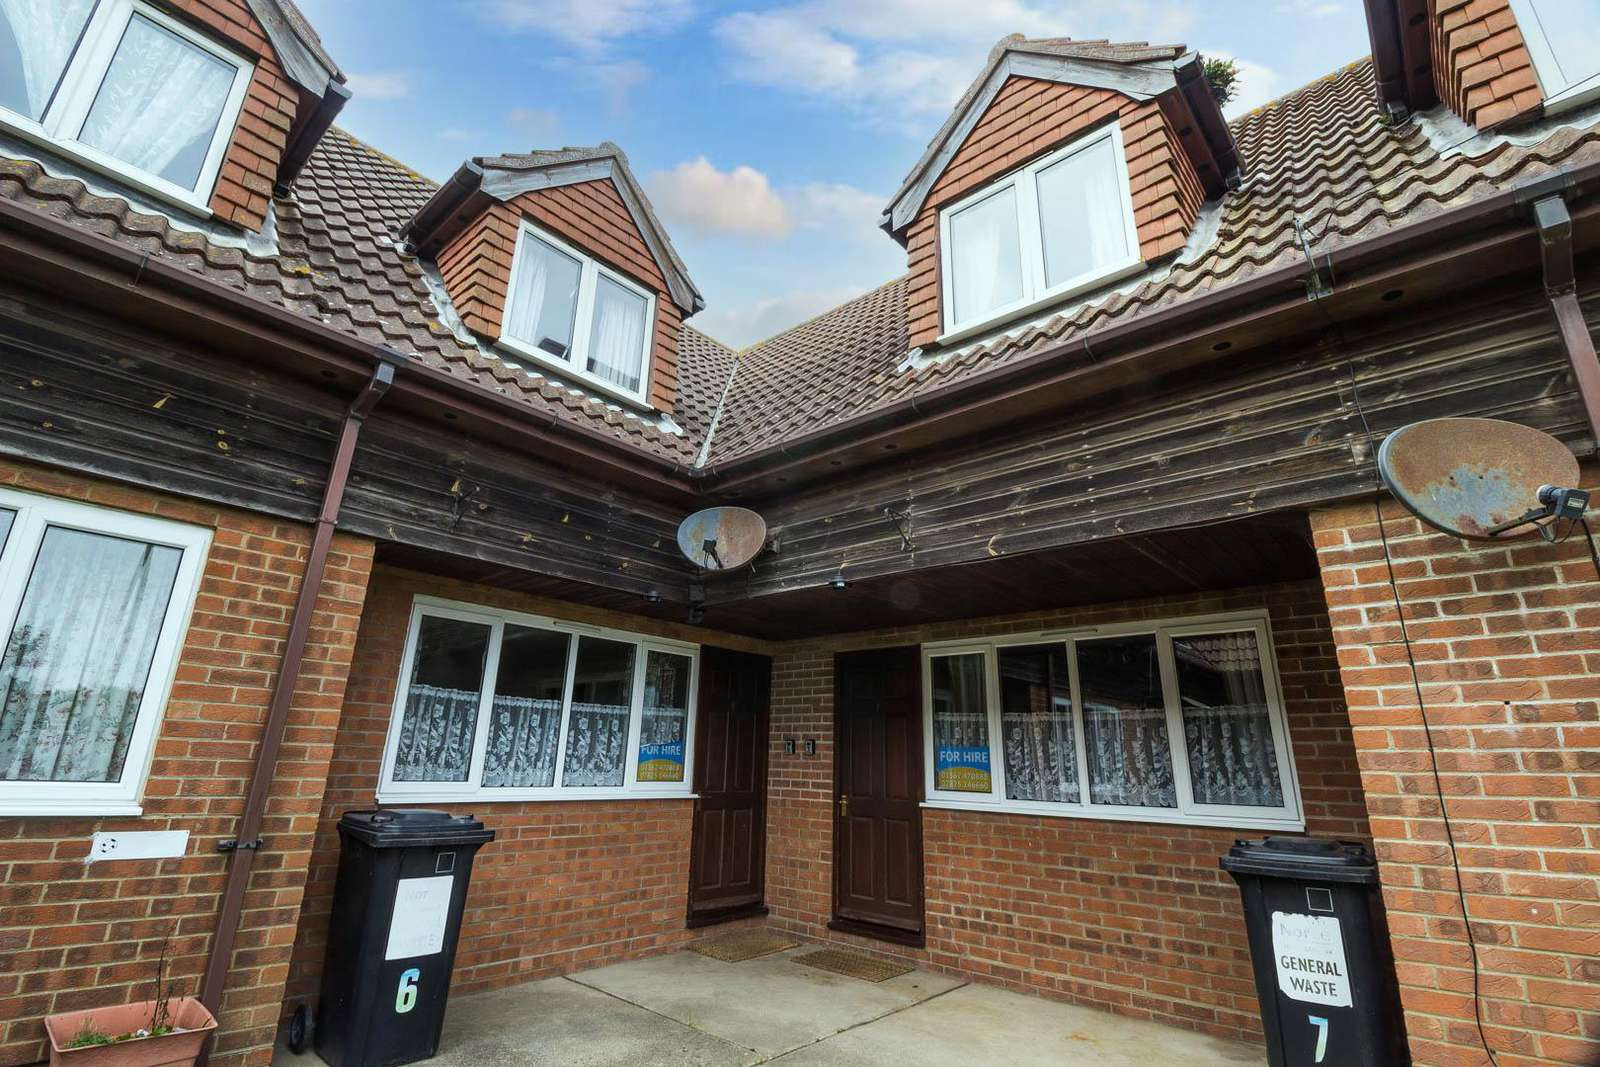 99007J – Jasmines, 3 Bedroom Holiday Cottage in Hemsby (sleeps up to 7 people). Diamond-Plus rated. - property